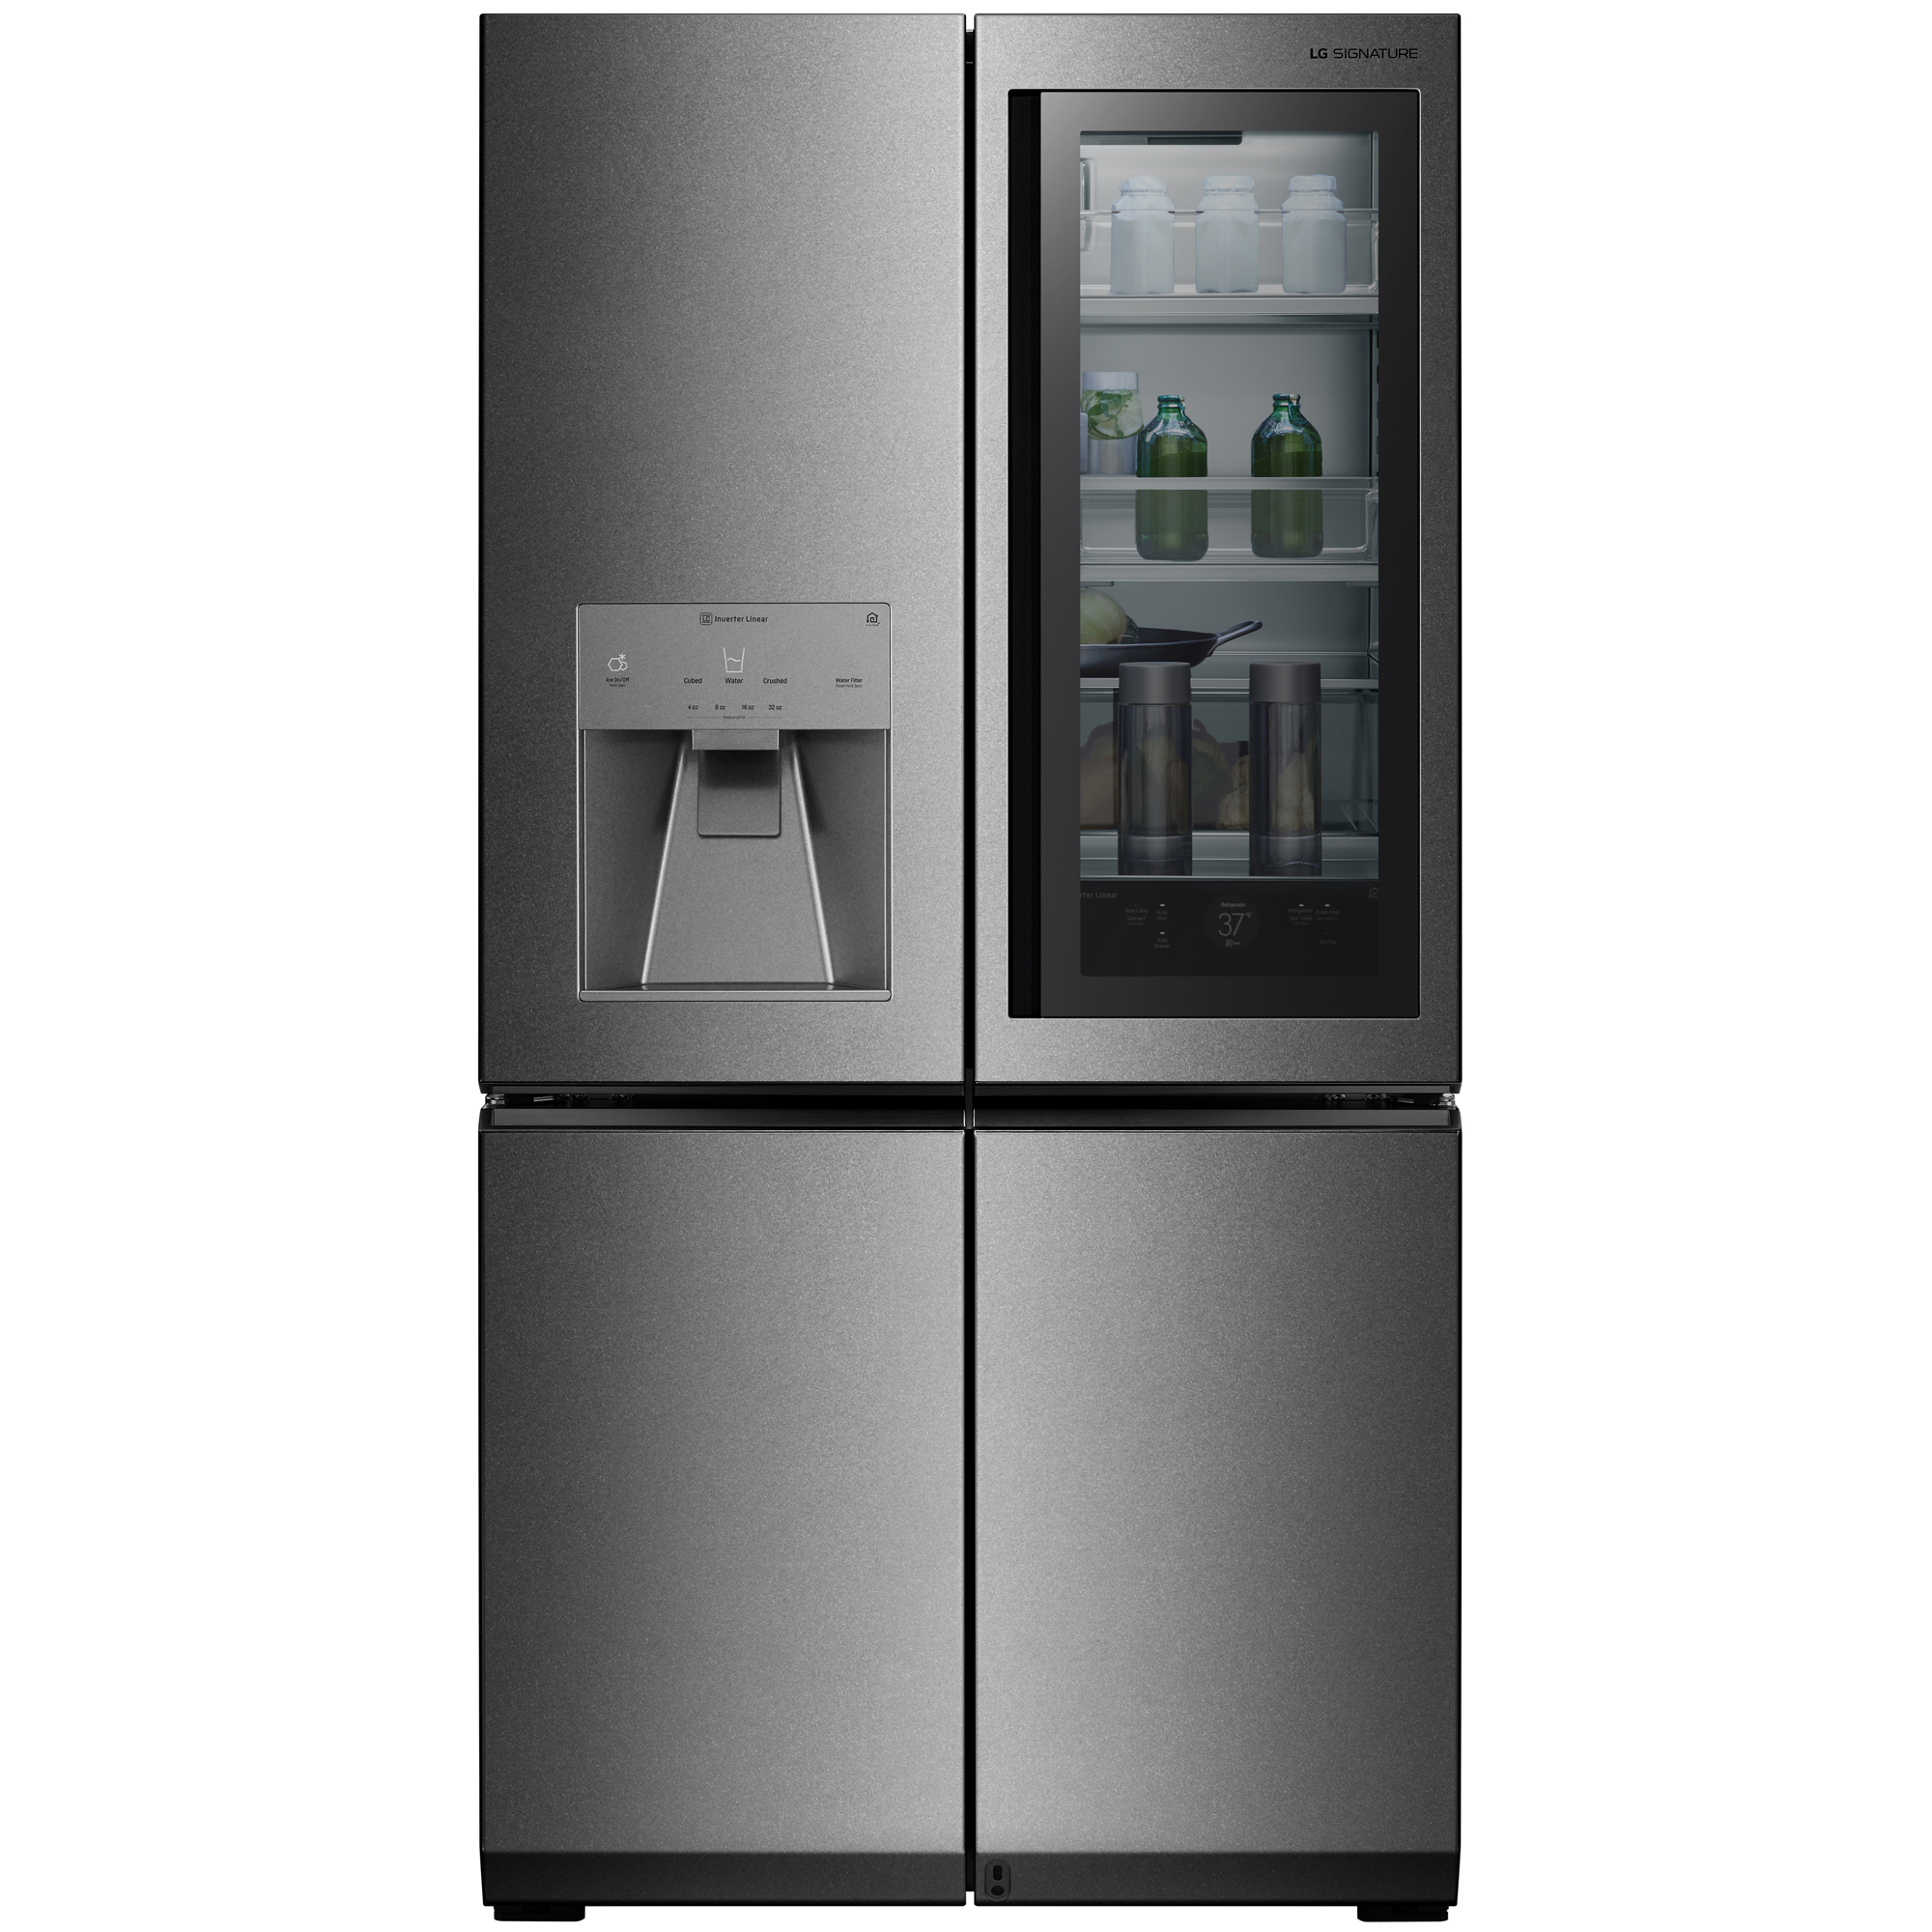 Image of LG SIGNATURE LUPXS3186N 30.8 cu. ft. Smart Wi-Fi Enabled InstaView Door-in-Door Refrigerator – Textured Steel , Stainless steel